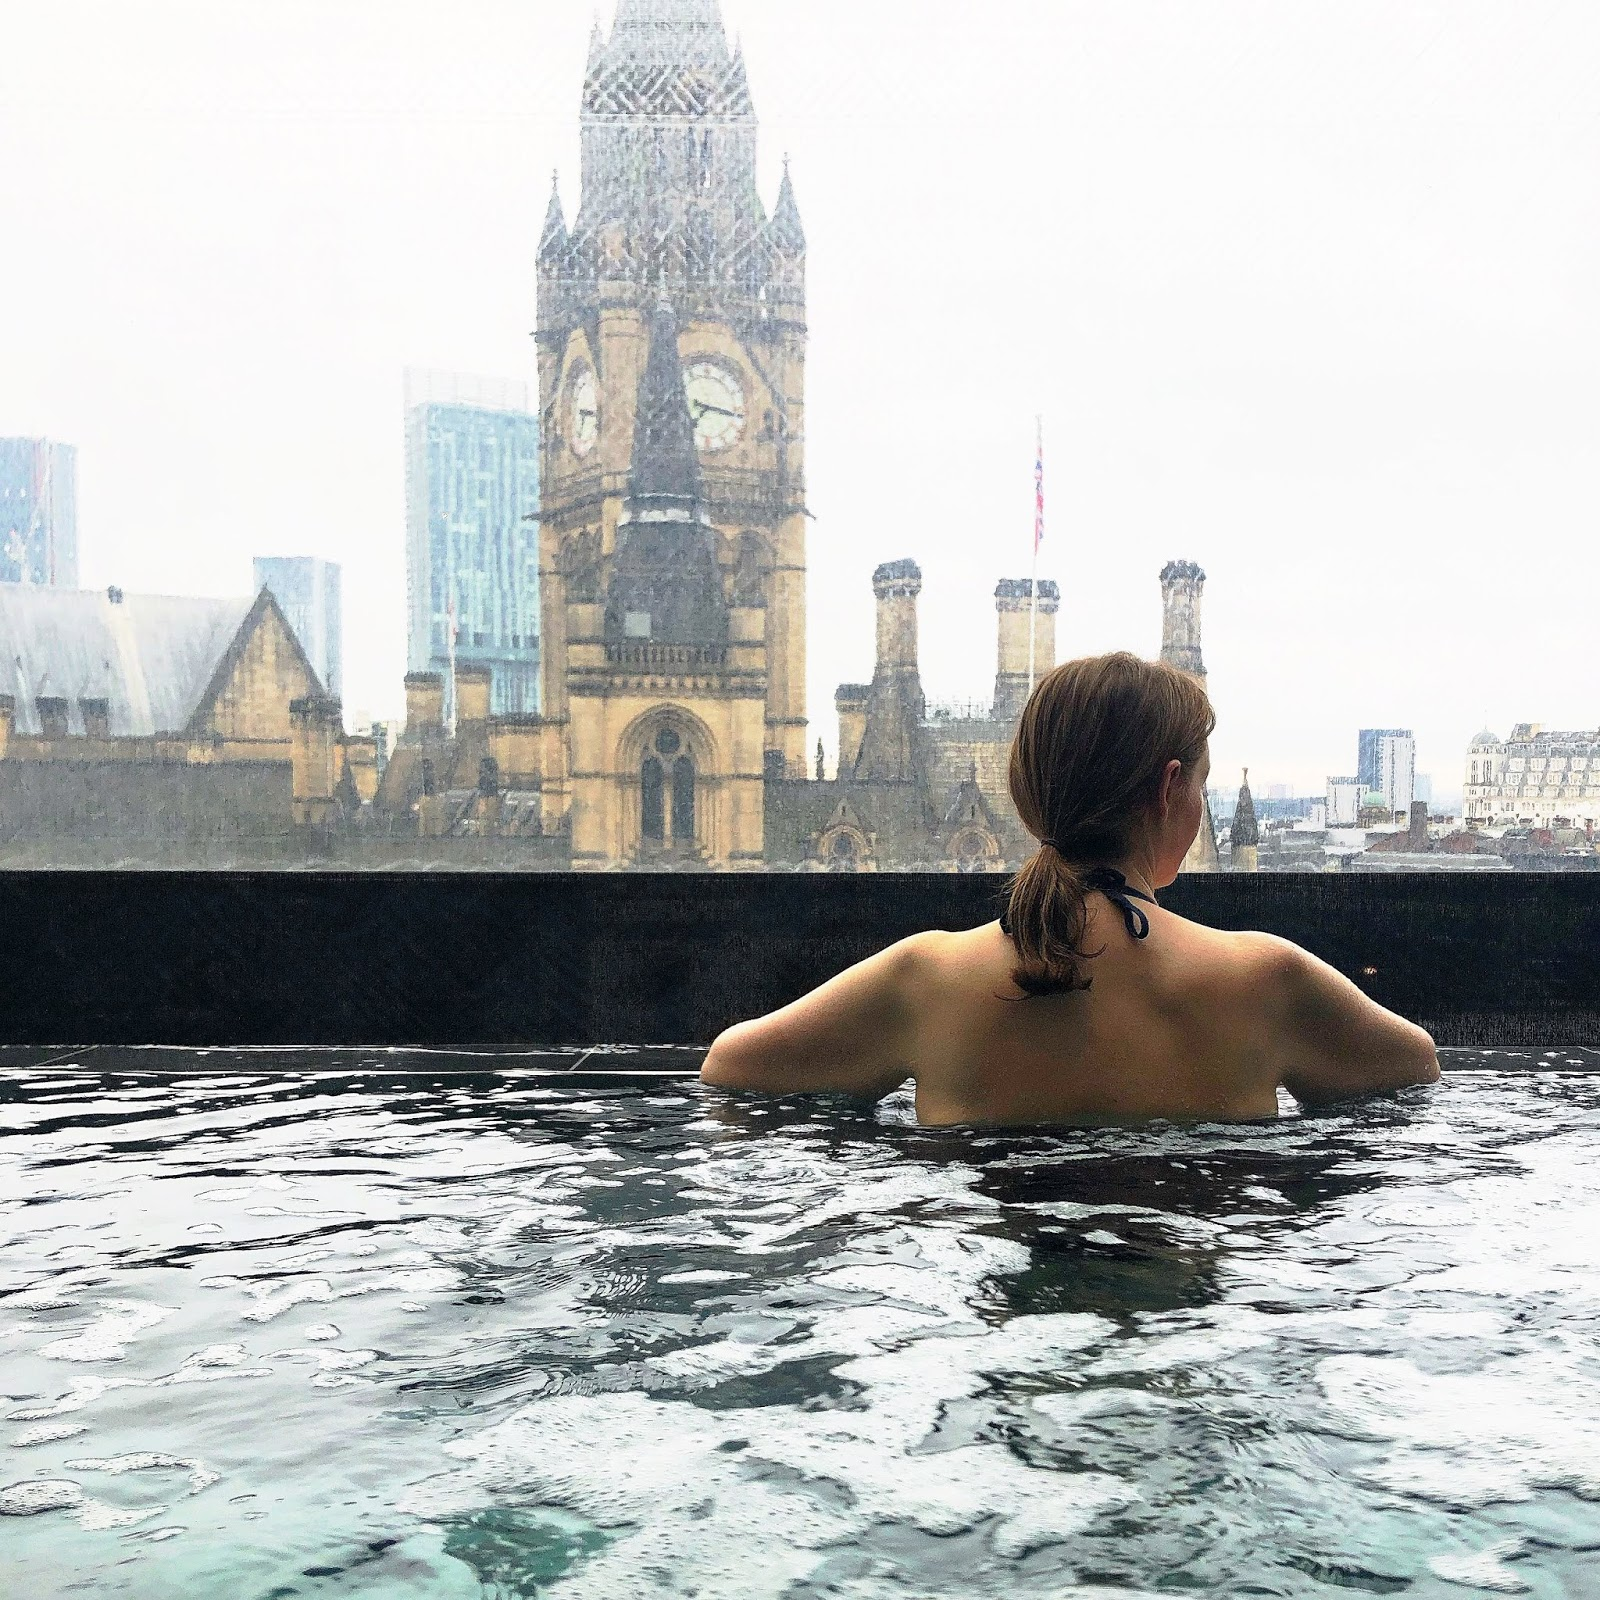 Suite King Street Townhouse, Manchester - Infinity Pool